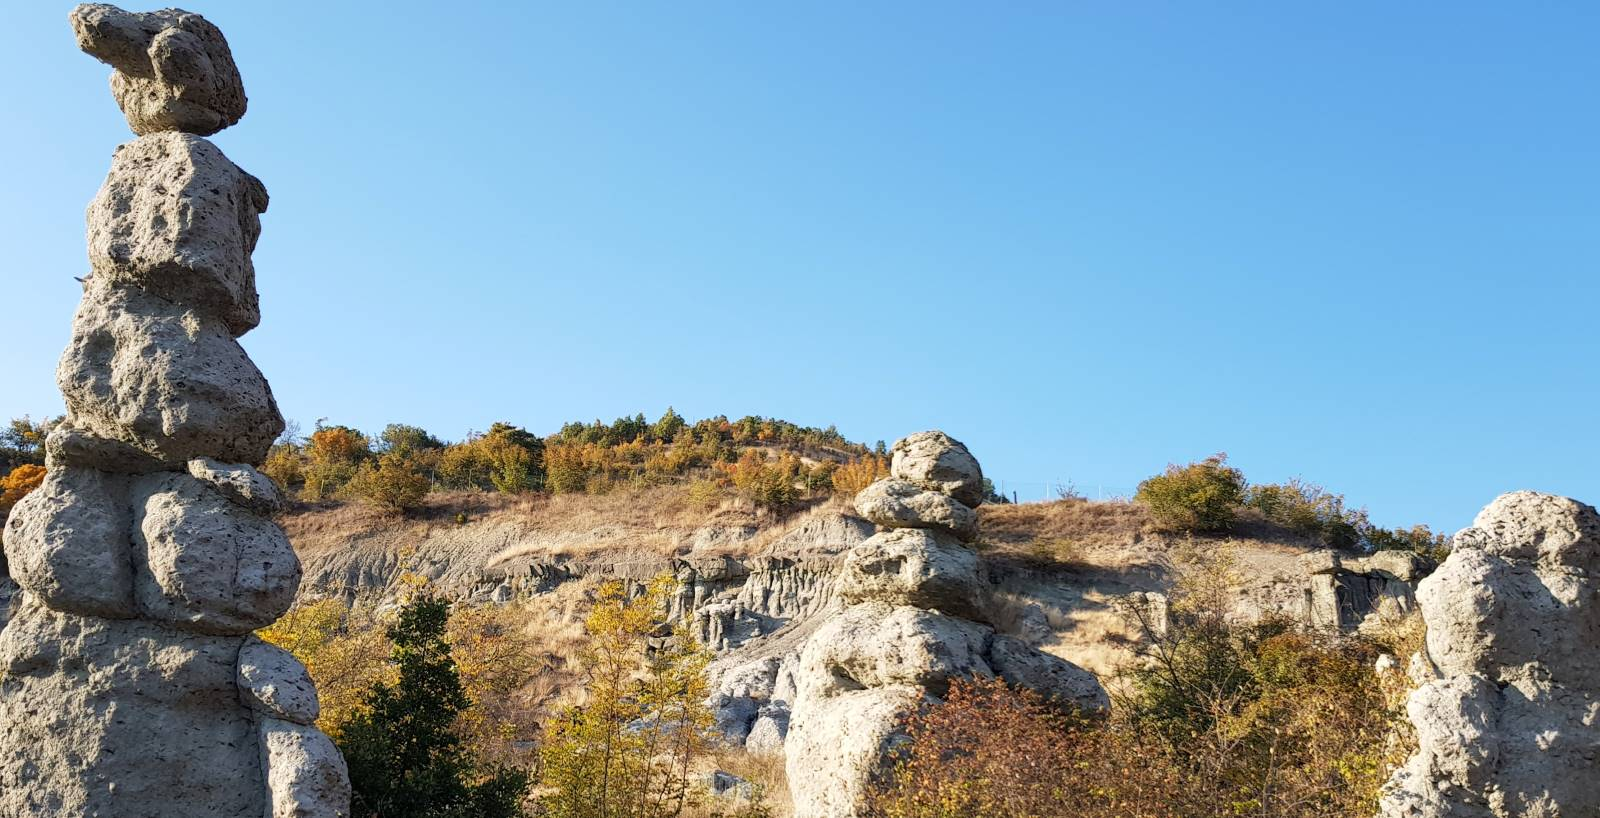 The stone dolls in Kuklici, near Kratovo, Macedonia